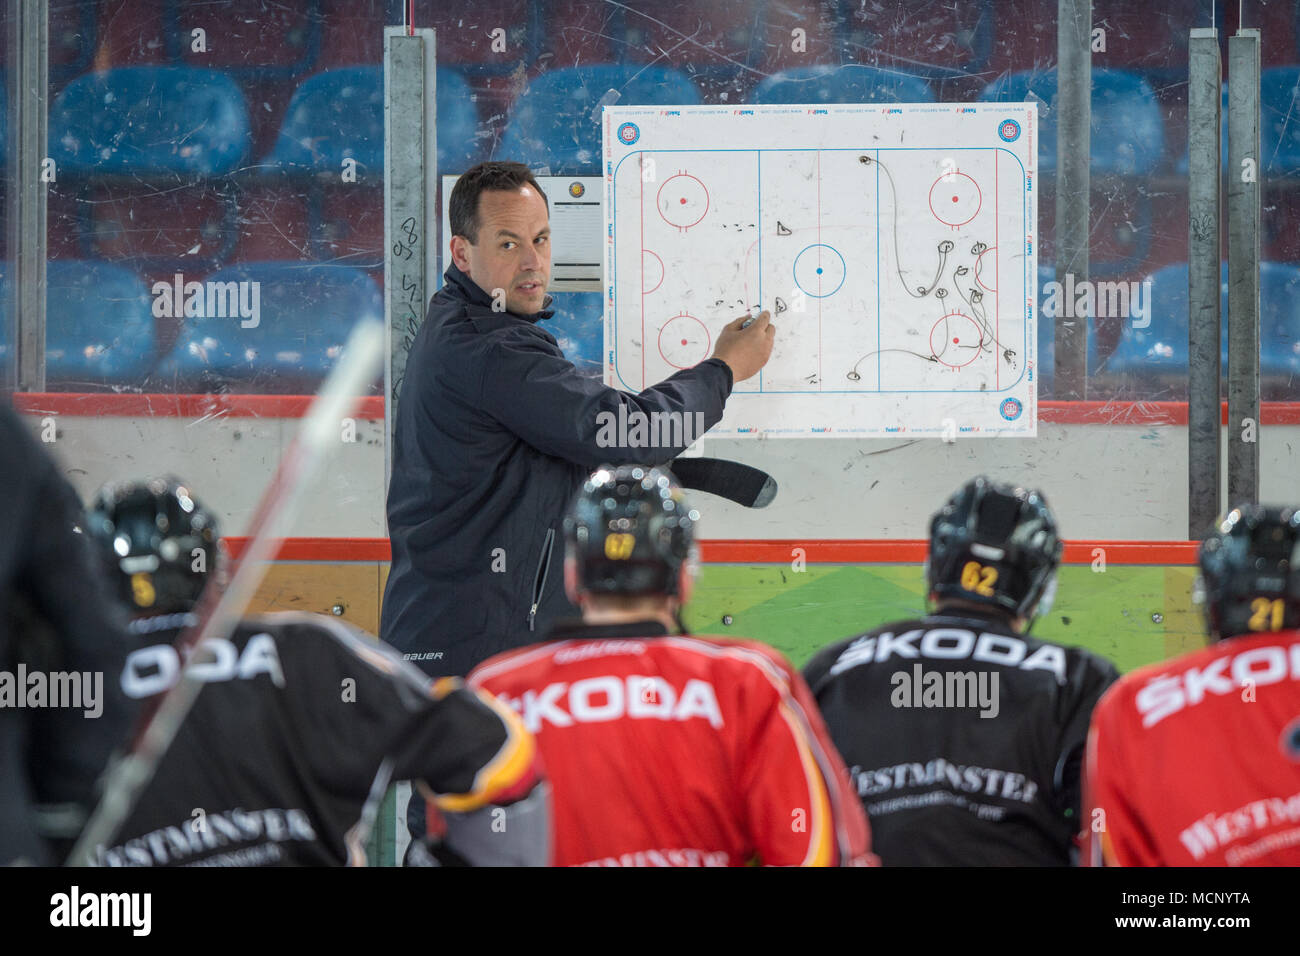 17 April 2018, Germany, Berlin: Coach Marco Sturm talks tactics with the Germany ice hockey team at the Wellblechpalast ice hockey arena. Germany face France on 21 April. Photo: Arne Bänsch/dpa - Stock Image